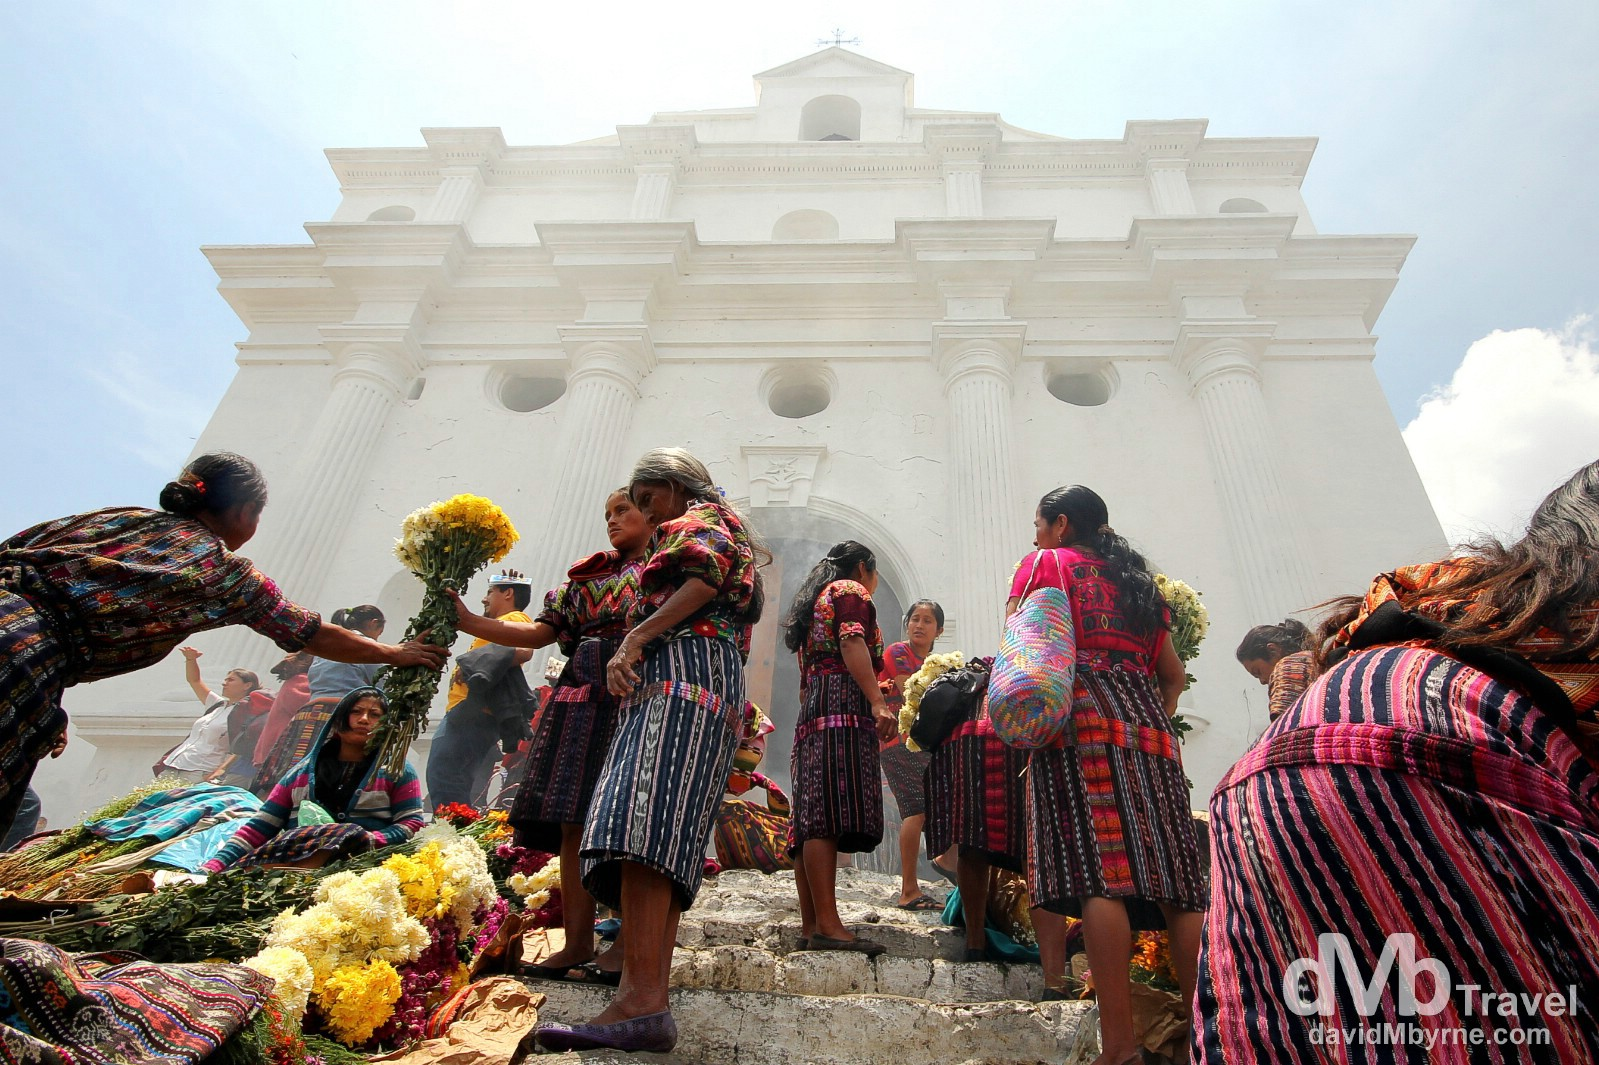 On the steps of Iglesia De Santo Tomas (Church of Saint Thomas), Chichicastenango (Chichi), Guatemala. May 23rd 2013.